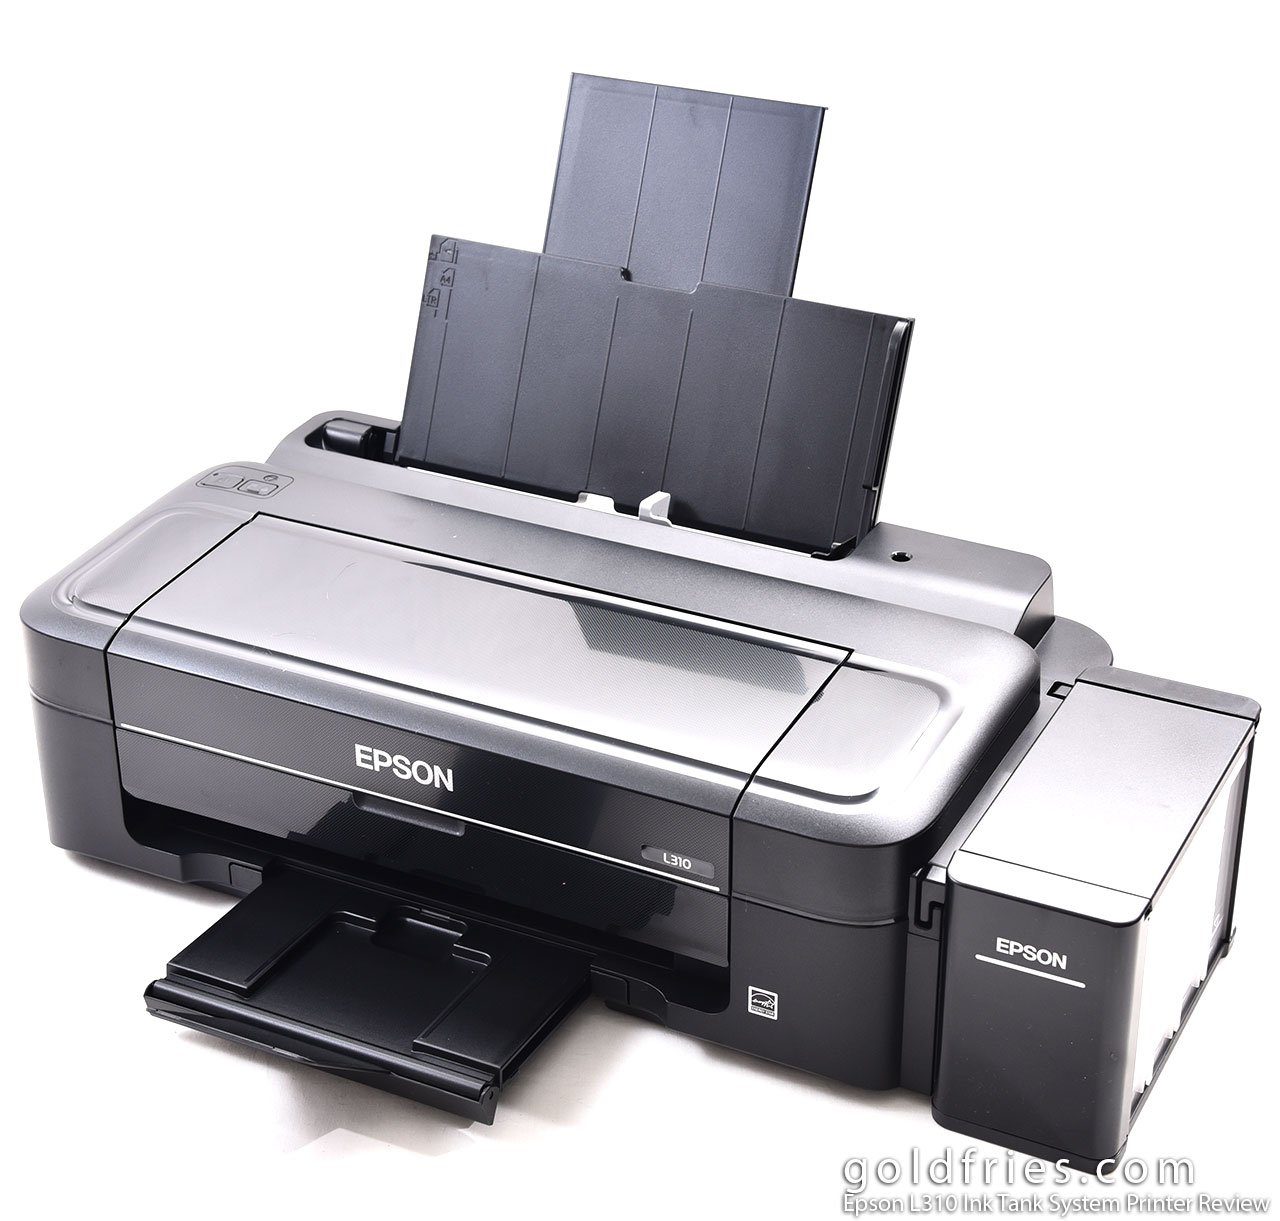 Epson L310 Ink Tank System Printer Review